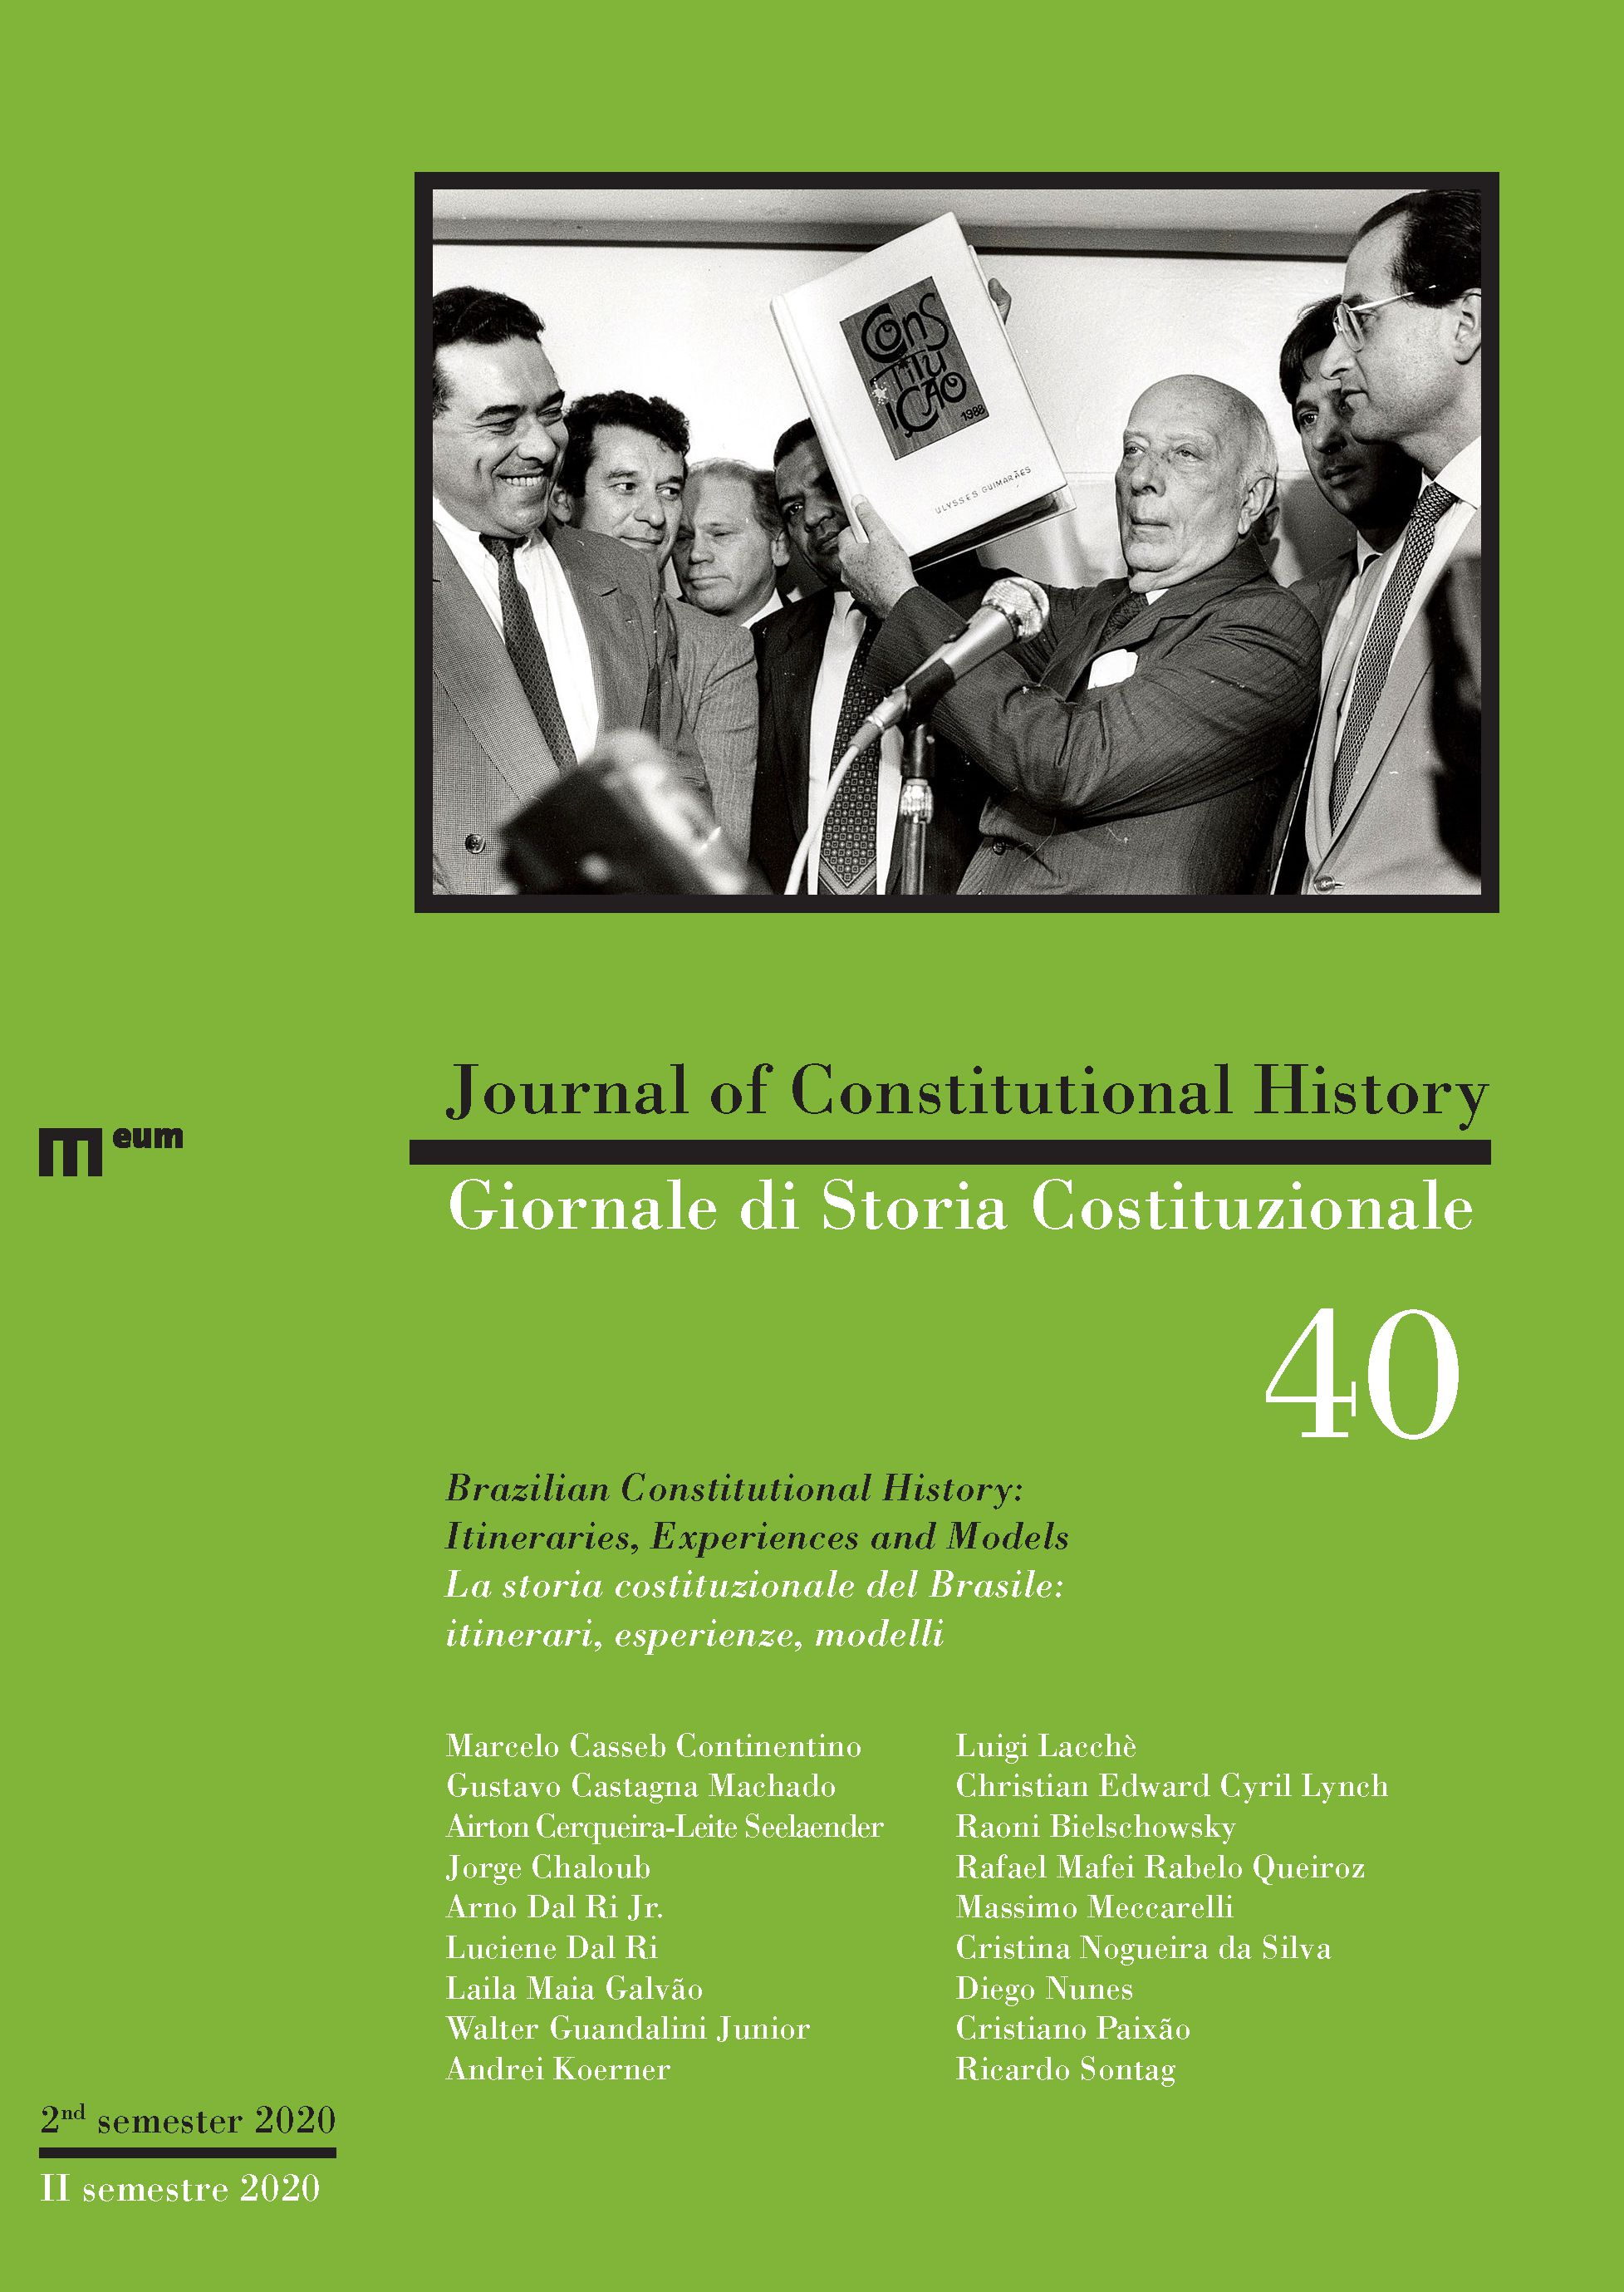 Journal of Constitutional History / Giornale di Storia Costituzionale n. 40, 2/2020